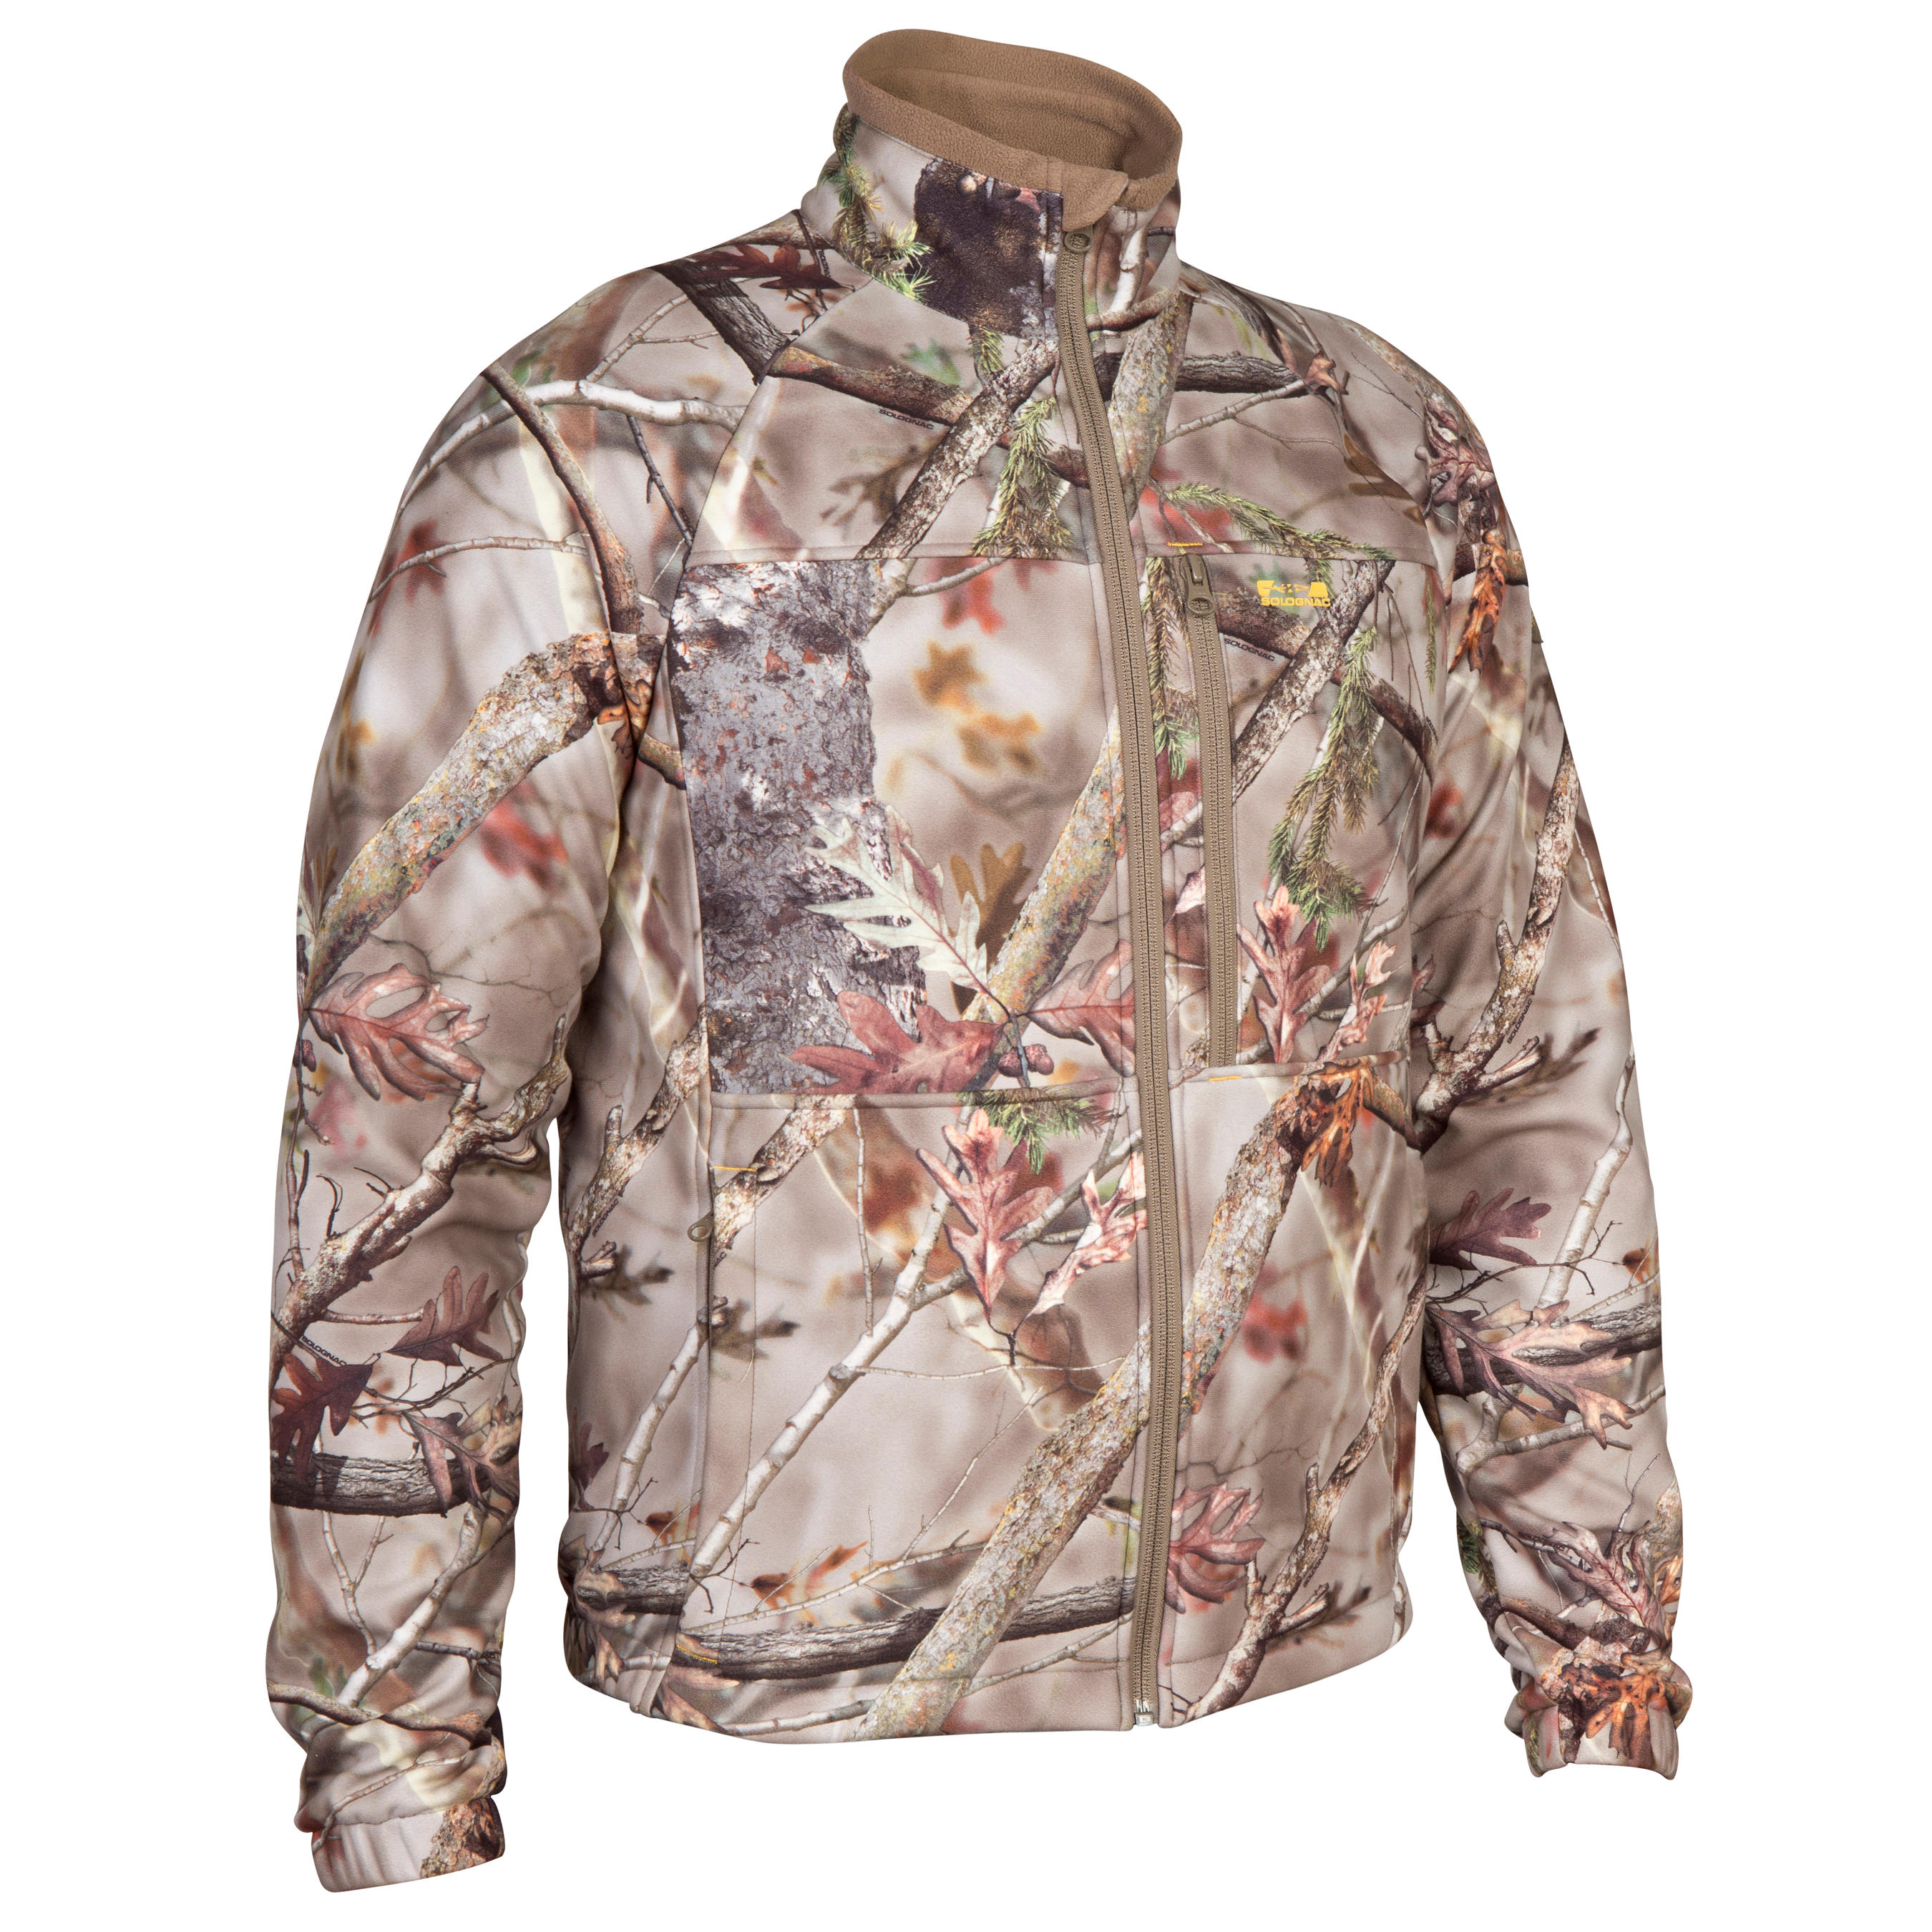 ACTIKAM 300 FLEECE HUNTING JACKET - CAMOUFLAGE BROWN